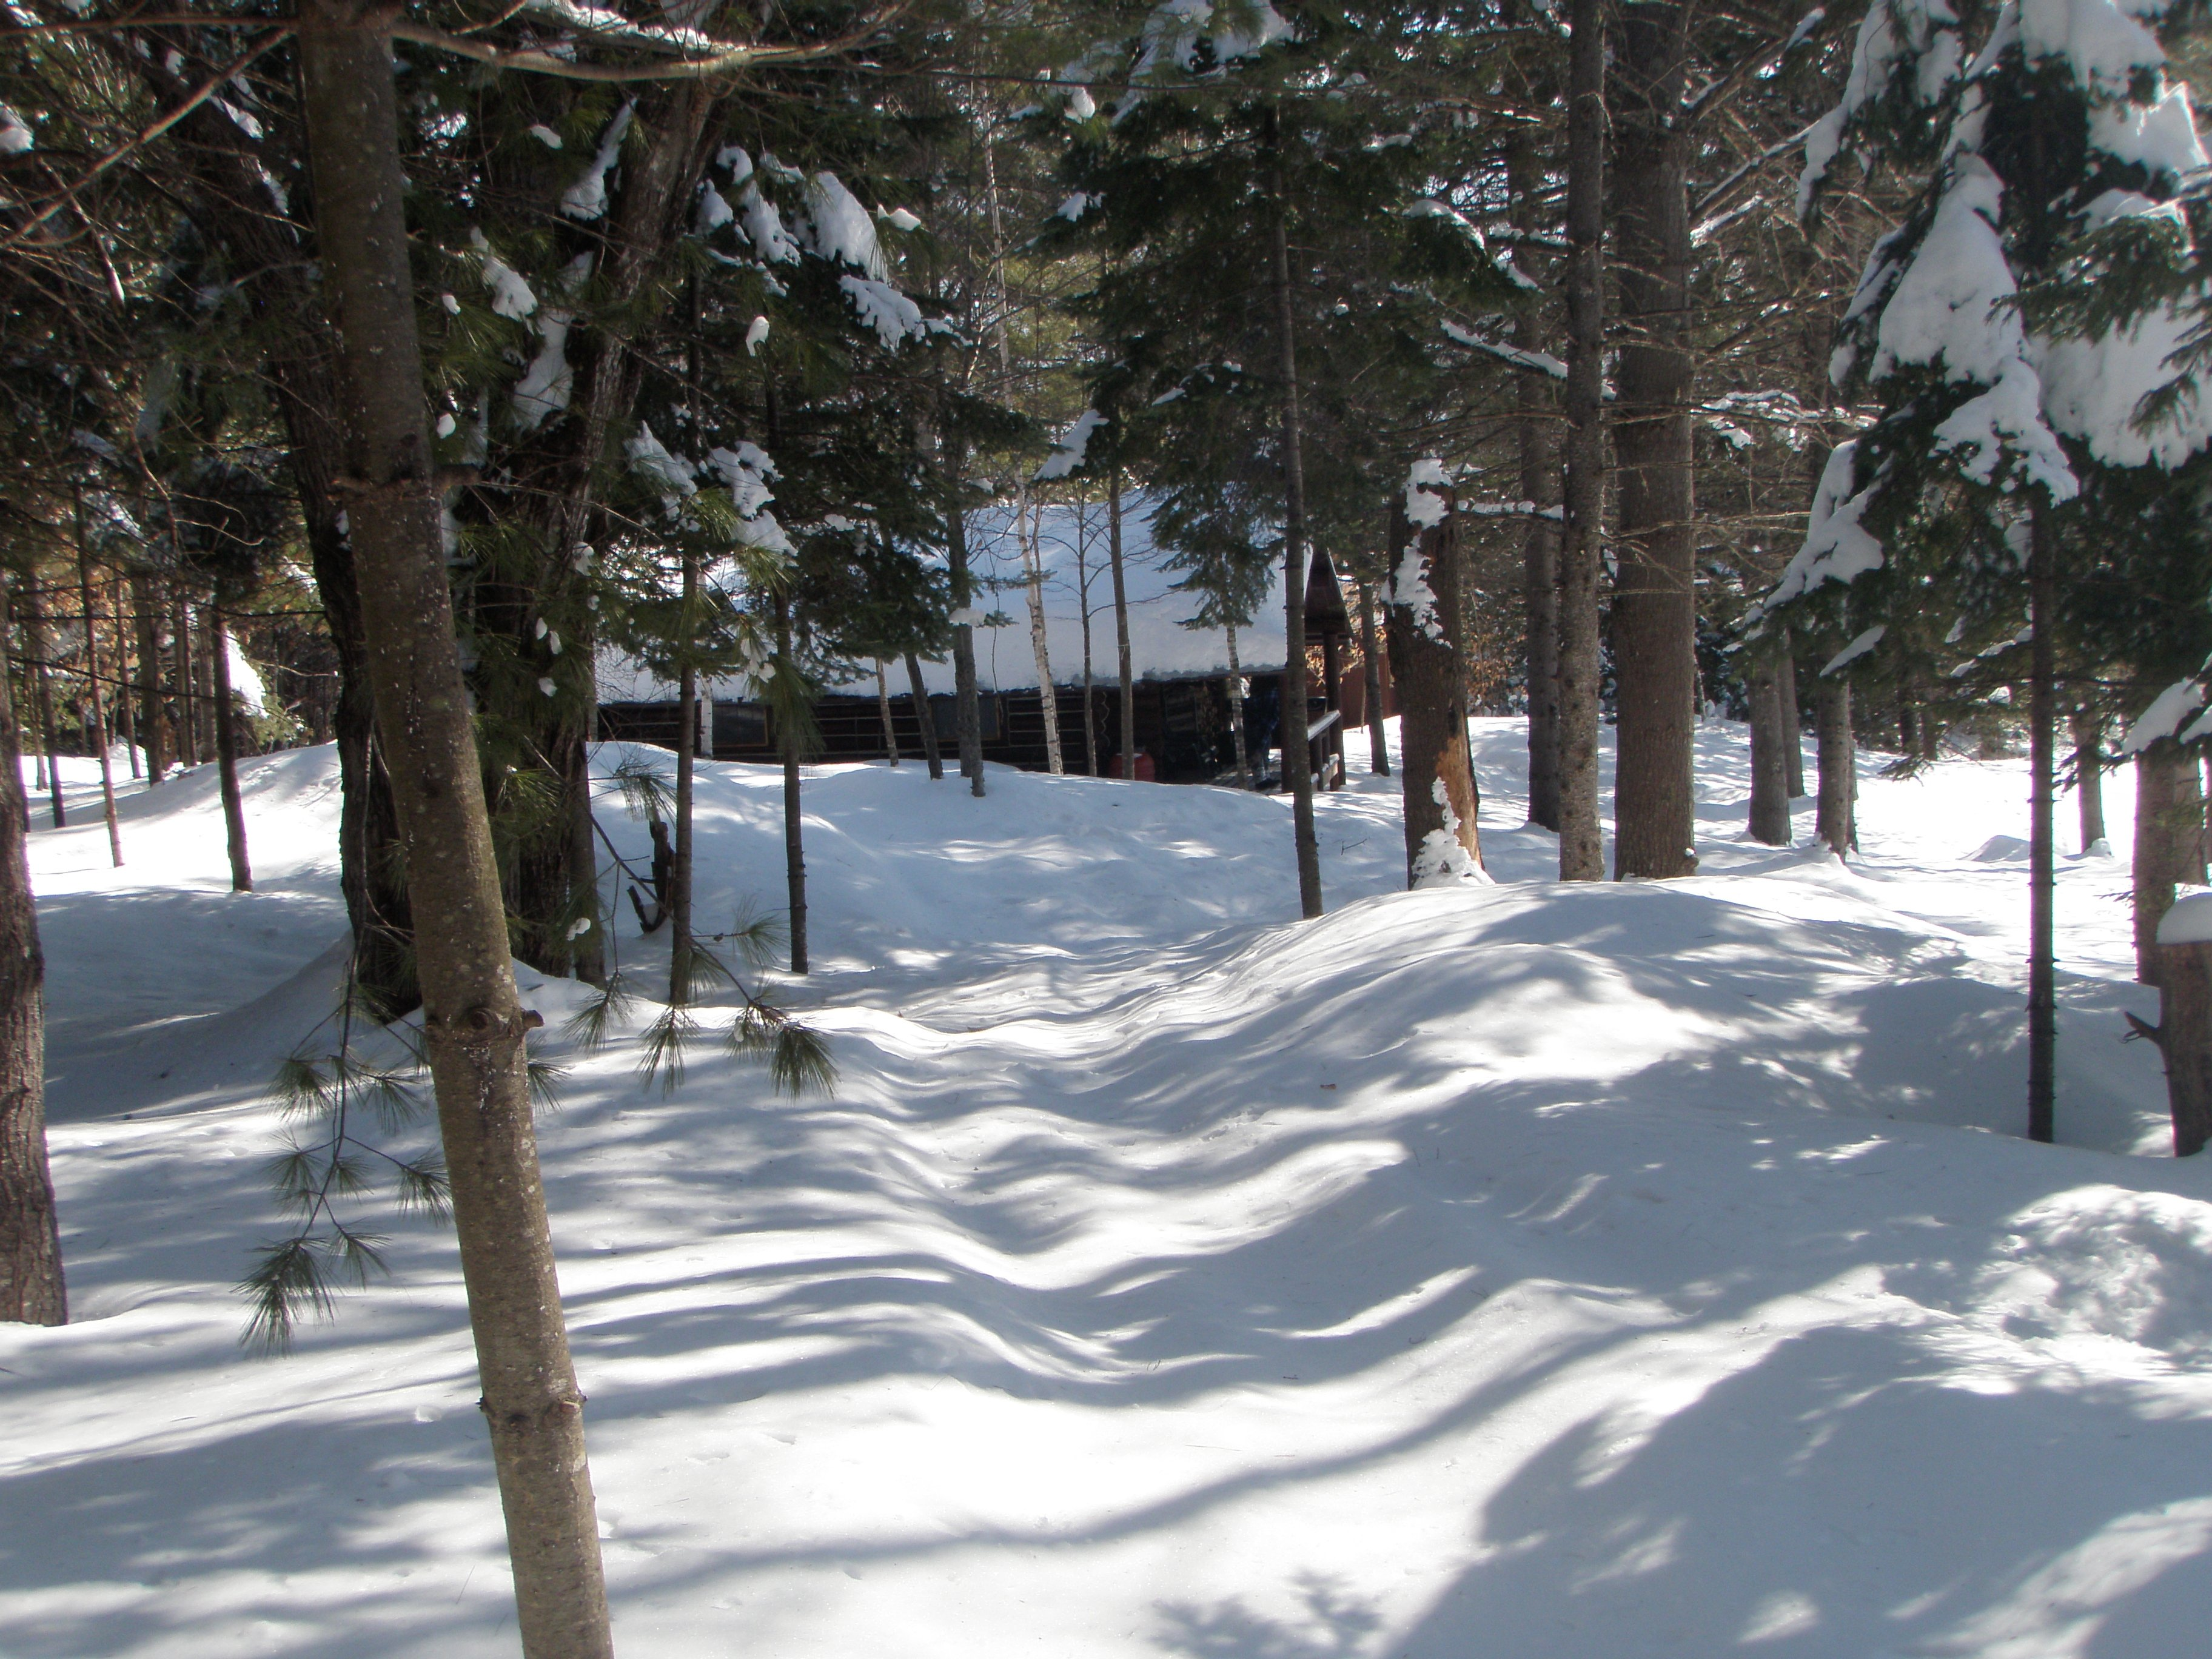 Seclusion in the snow